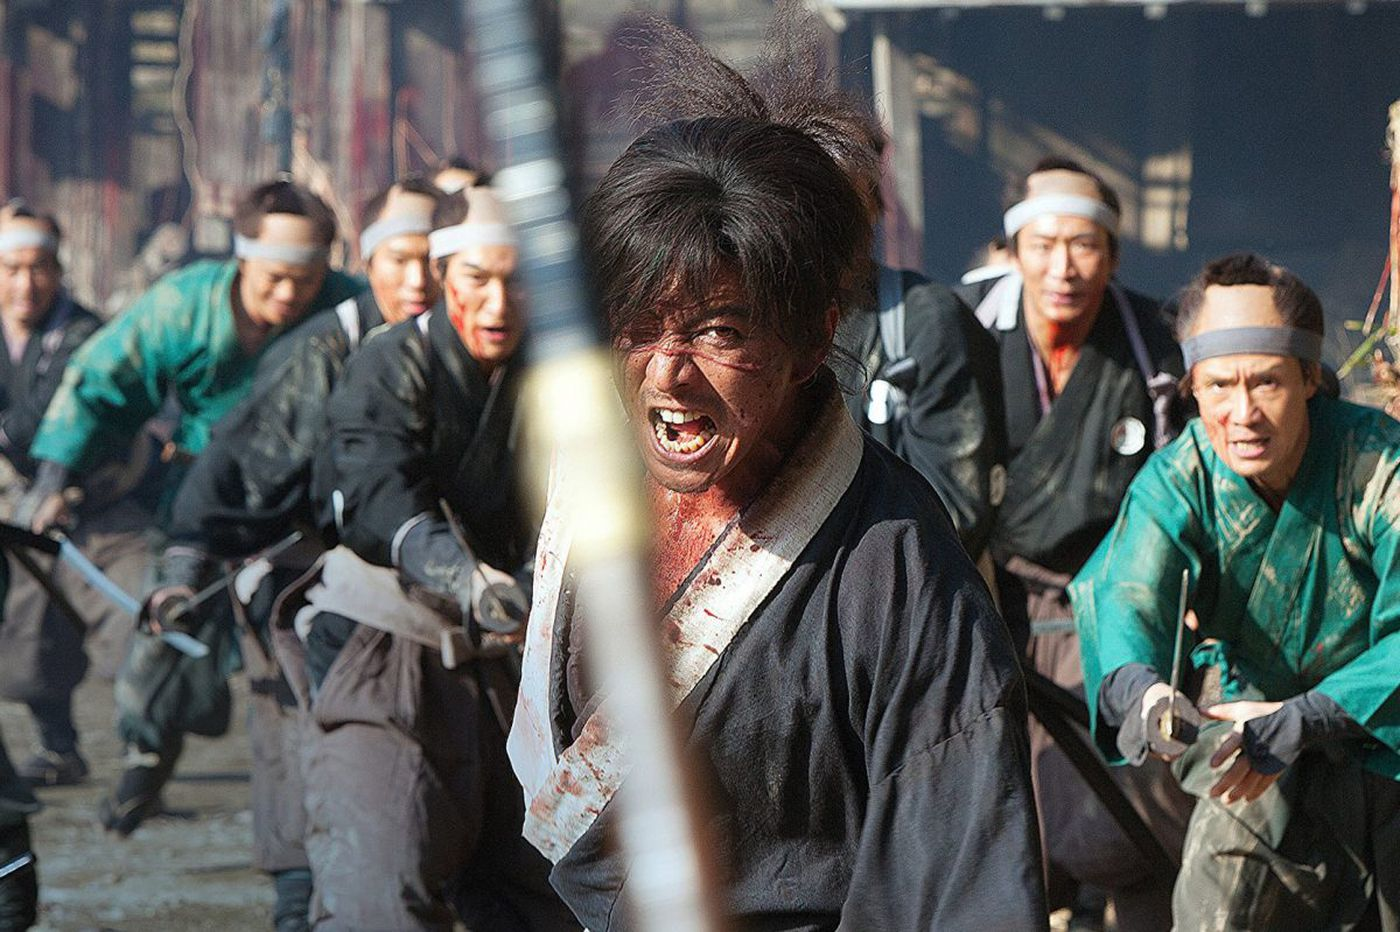 'Blade of the Immortal': Takashi Miike's zombie-samurai gorefest could use some cutting